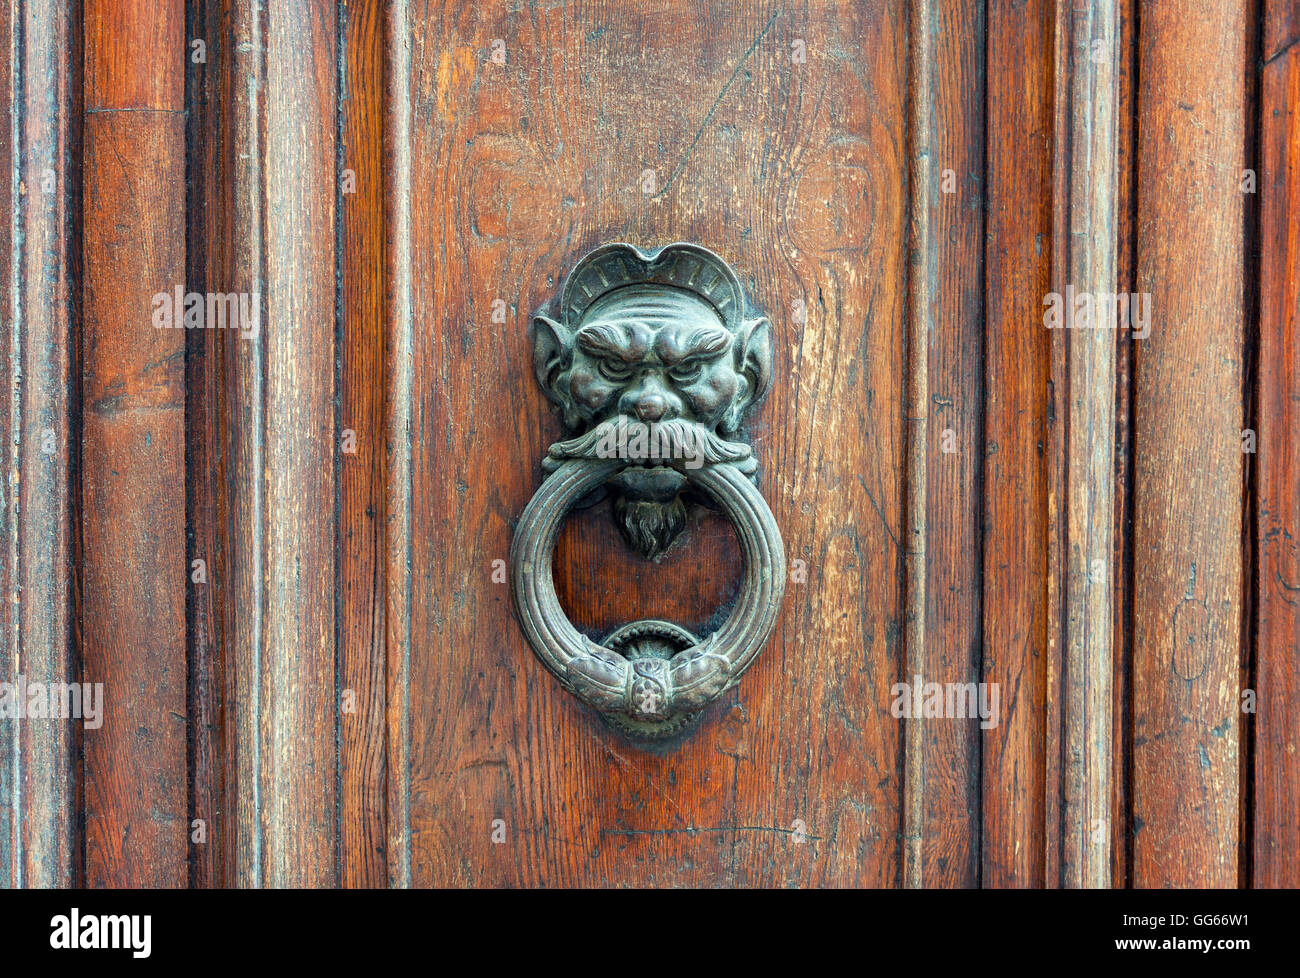 Iron lion doorknob on the old weathered wooden door in Florence, Italy - Stock Image